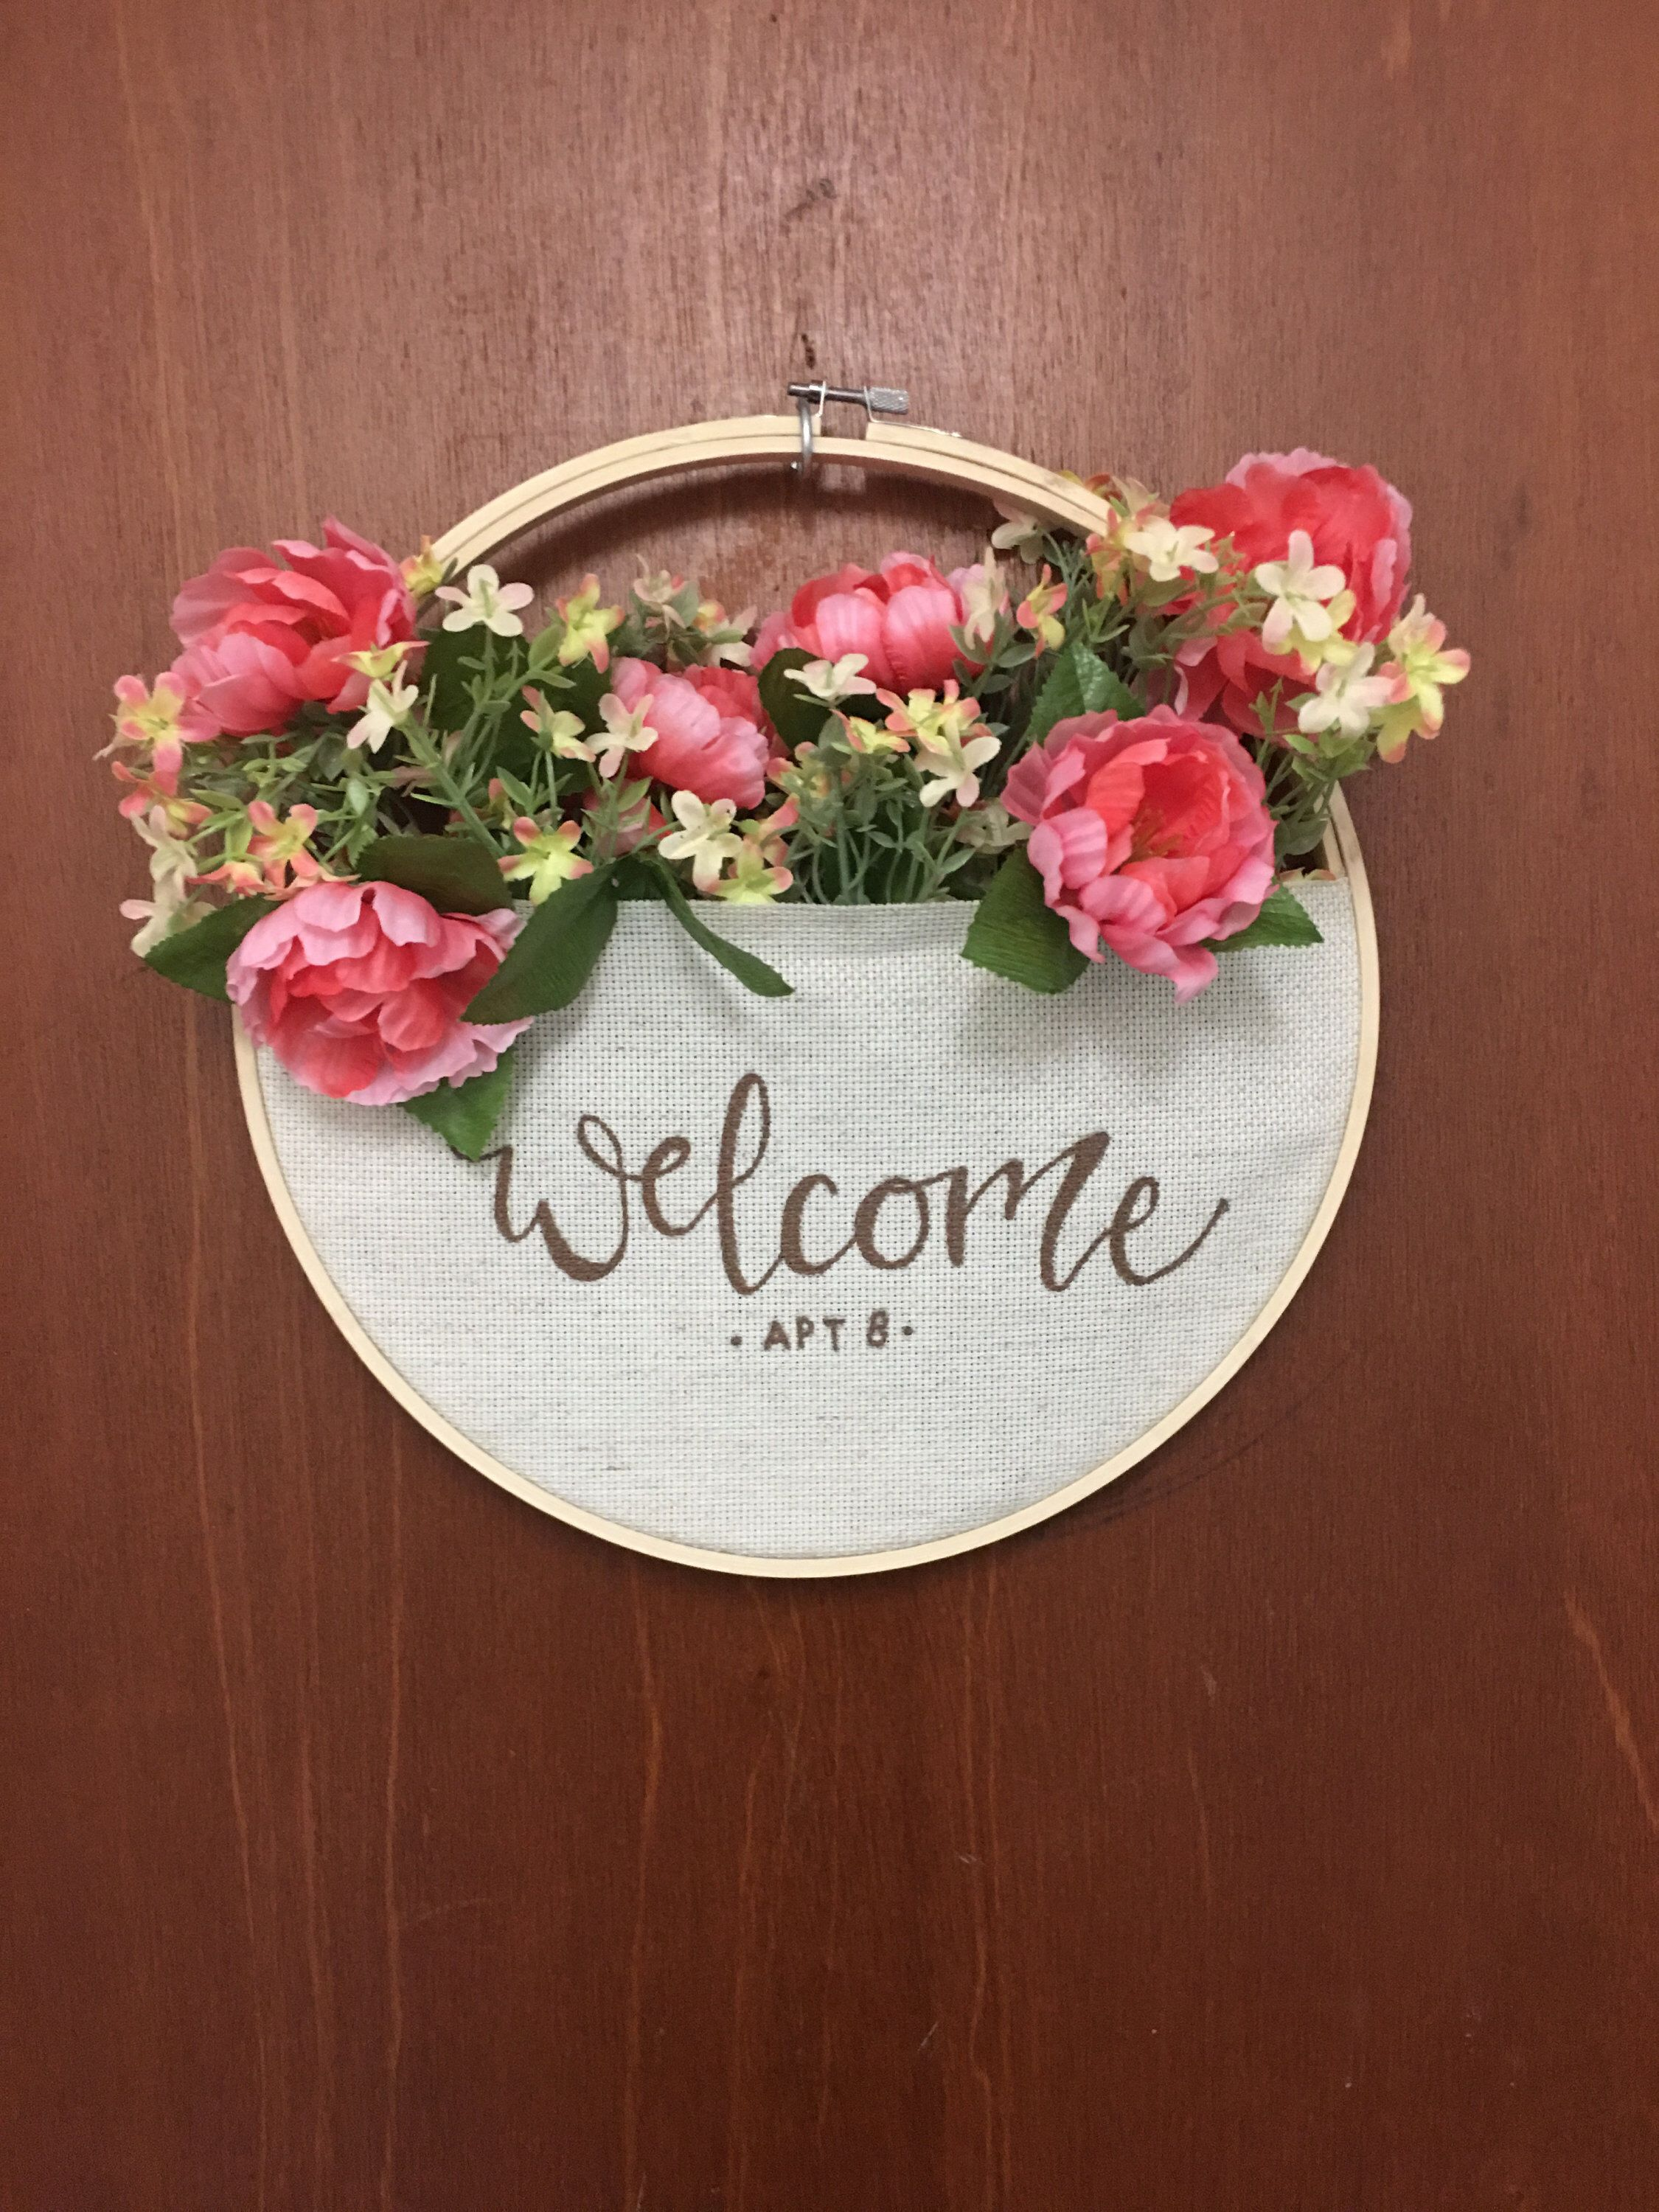 Embroidery Hoop Wreath with Pocket for seasonal filling by